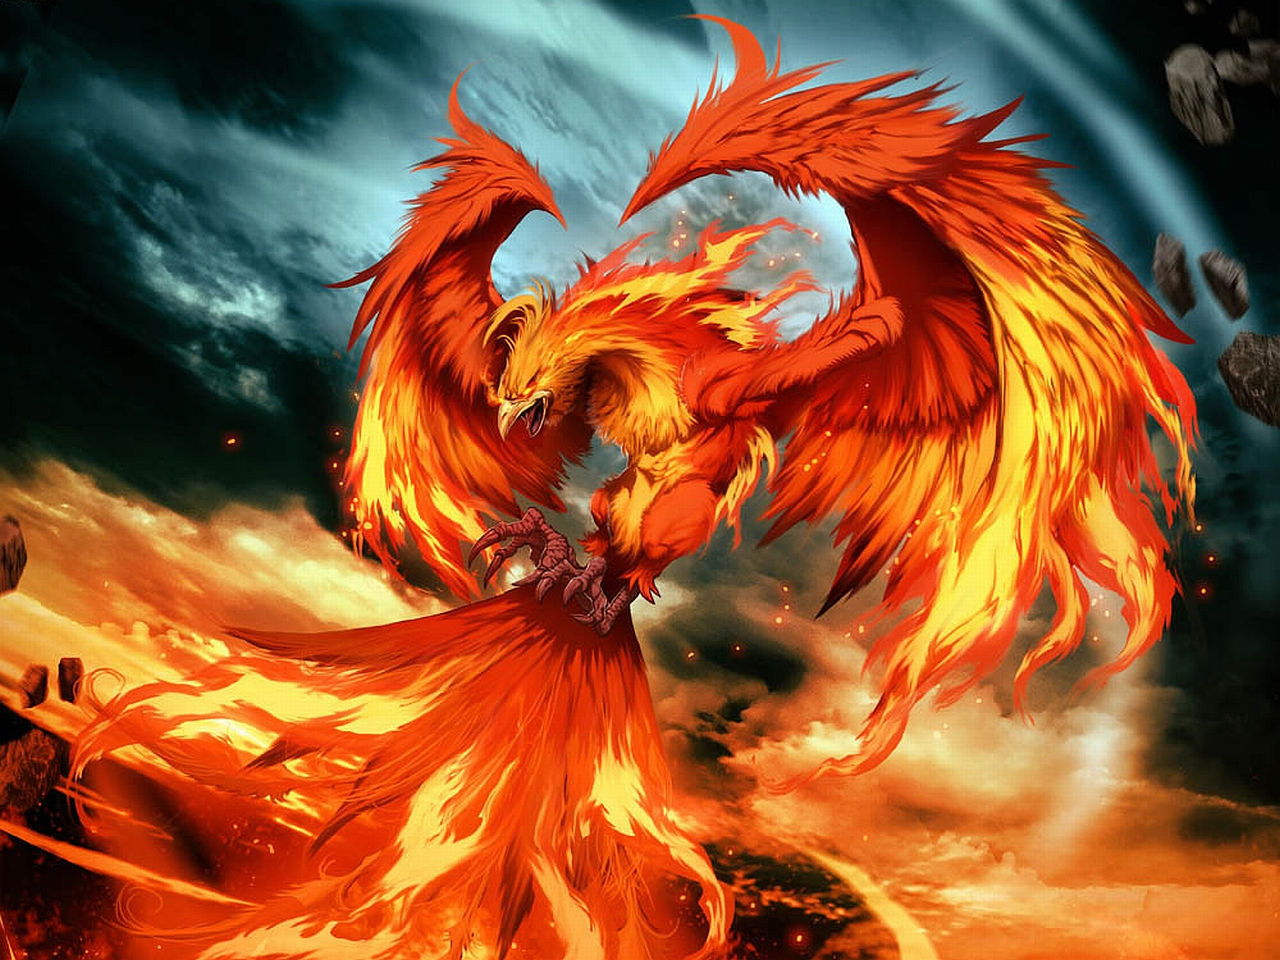 Phoenix Wallpapers Hintergrnde 1280x960 ID191606 1280x960